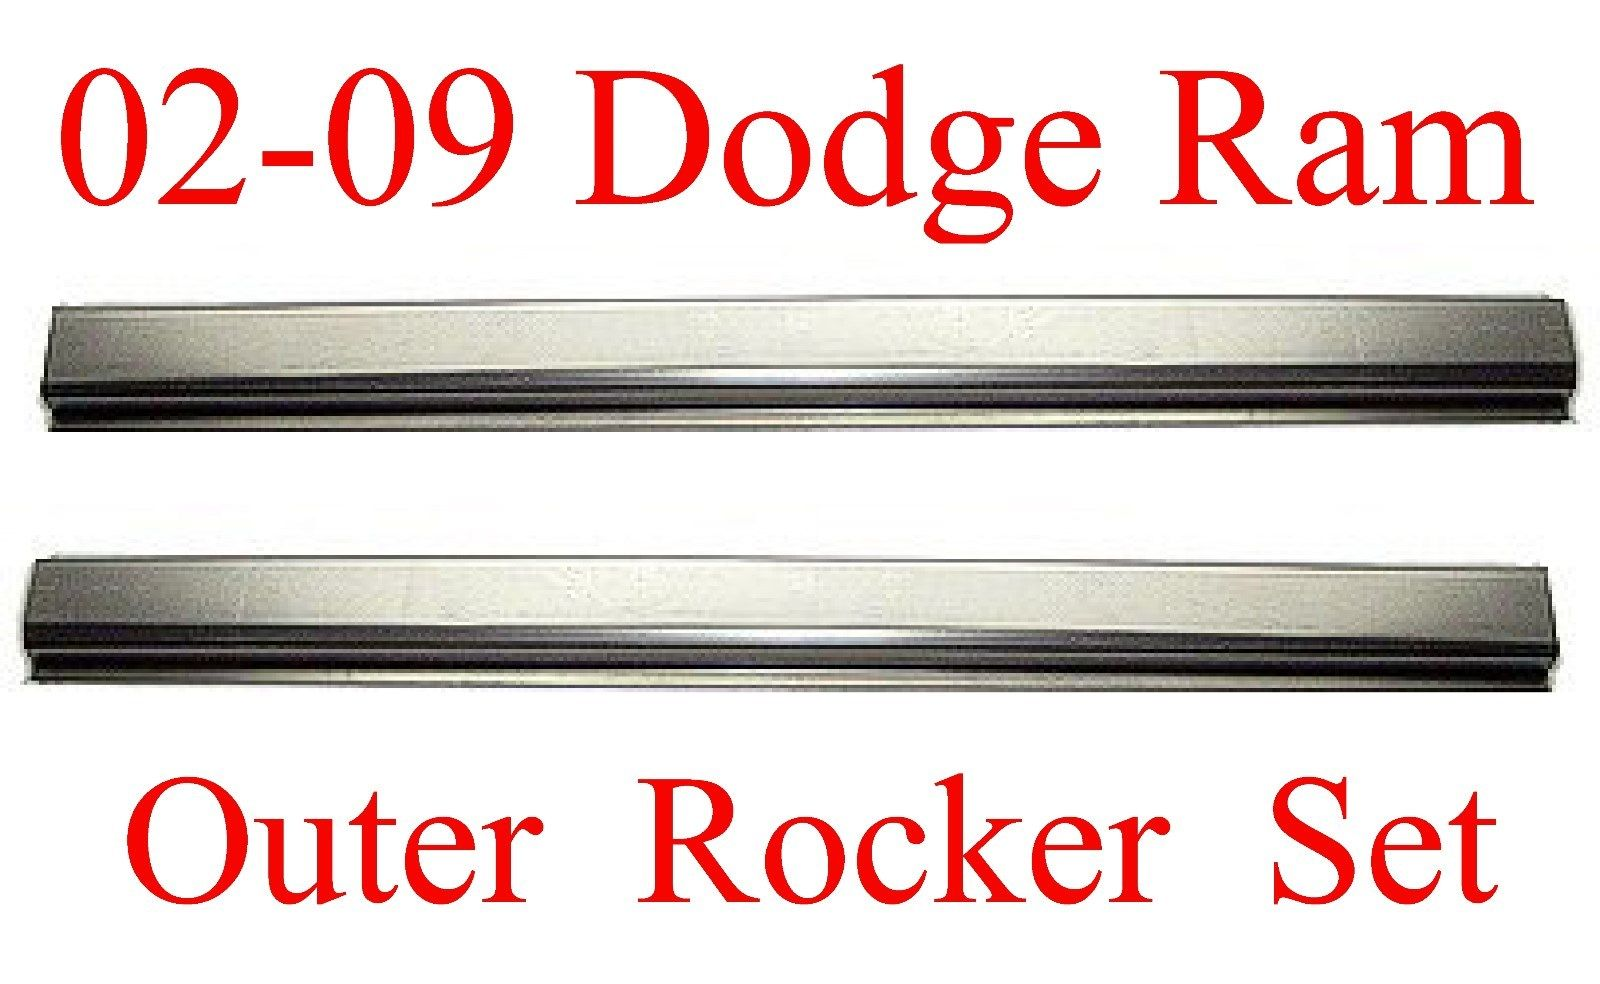 02-09 Dodge Quad Cab Outer Rocker Panel Set